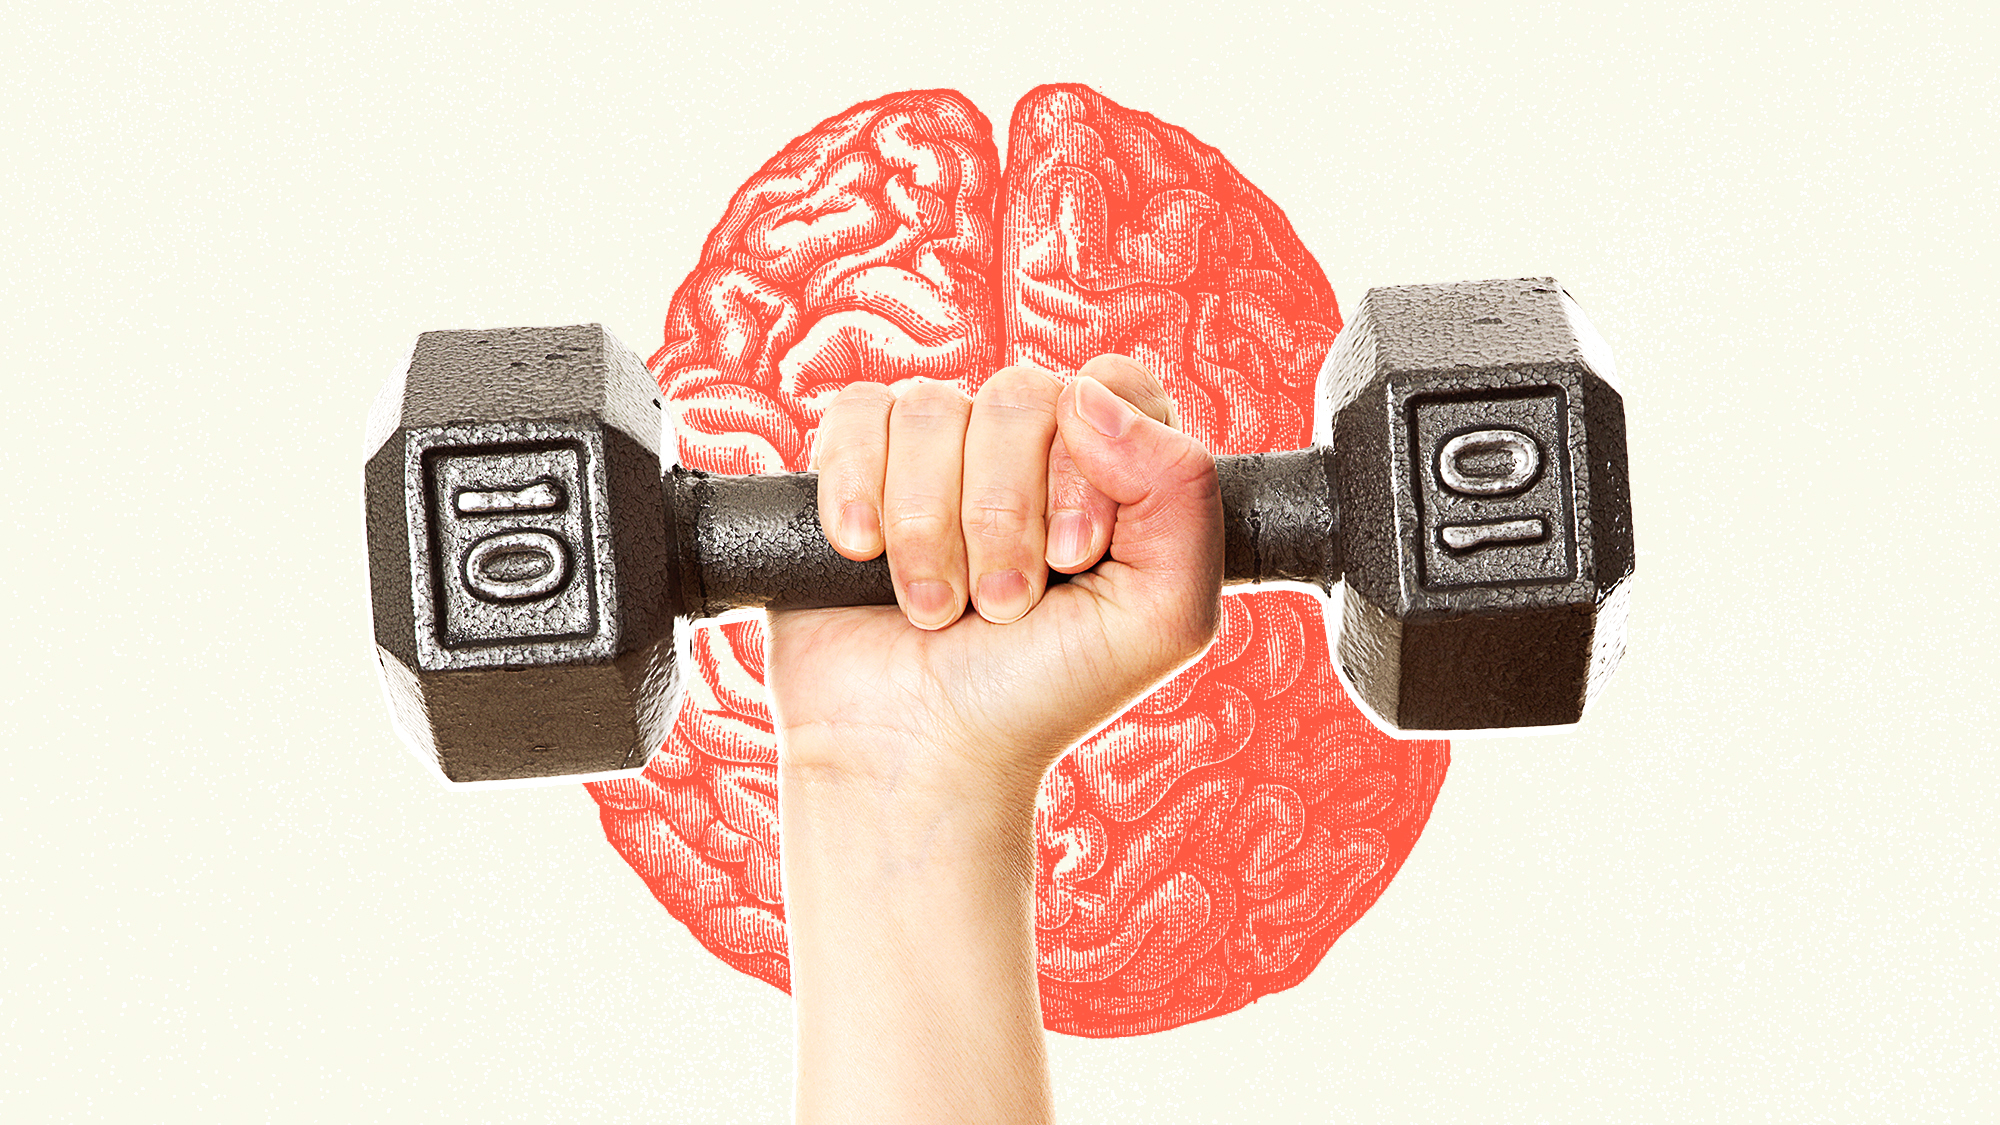 a woman's hand holding a 10lb dumbbell with an illustration of a brain in the background